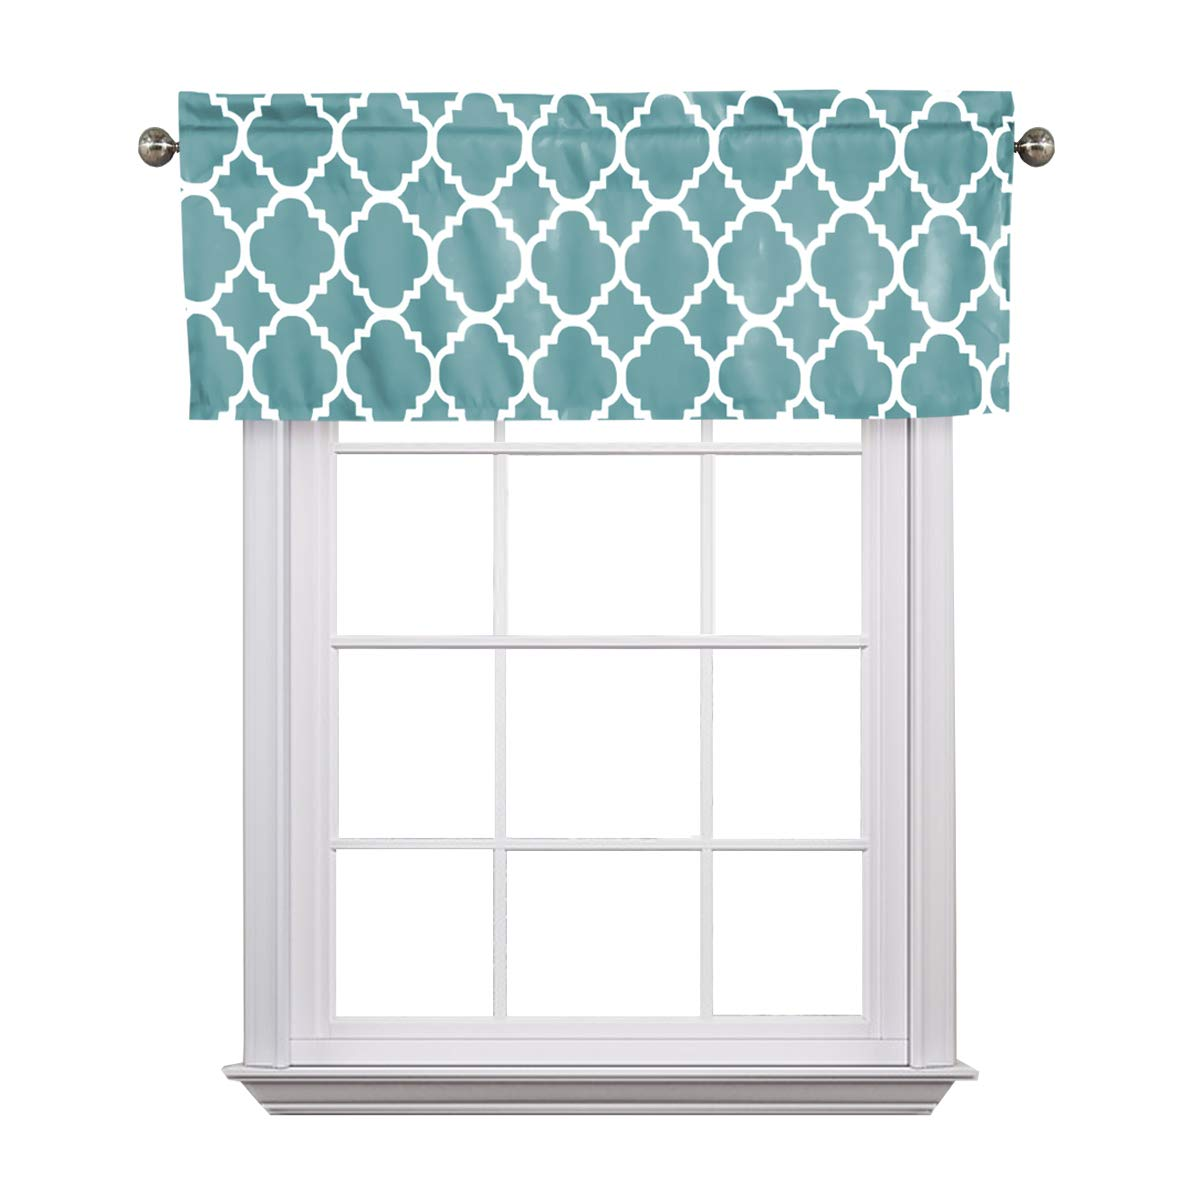 Flamingo P Moroccan Teal Valance Curtain Extra Wide and Short Window Treatment for for Kitchen Living Dining Room Bathroom Kids Girl Baby Nursery Bedroom 52'' X18'' by Flamingo P